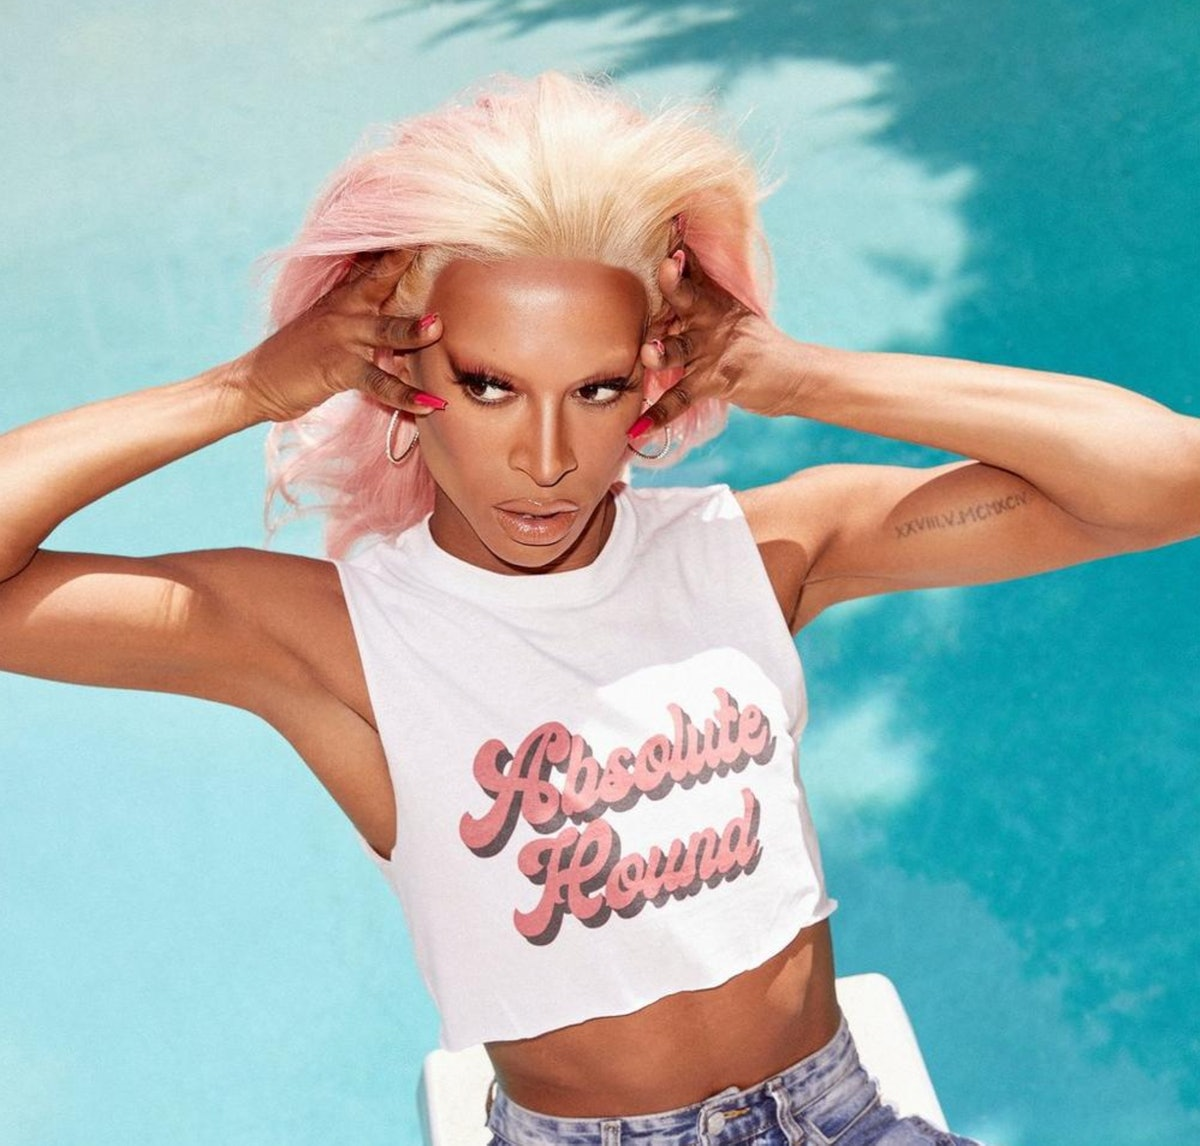 Welsh drag queen on RuPaul's Drag Race Tayce models the Tayce x Nasty Gal Collection